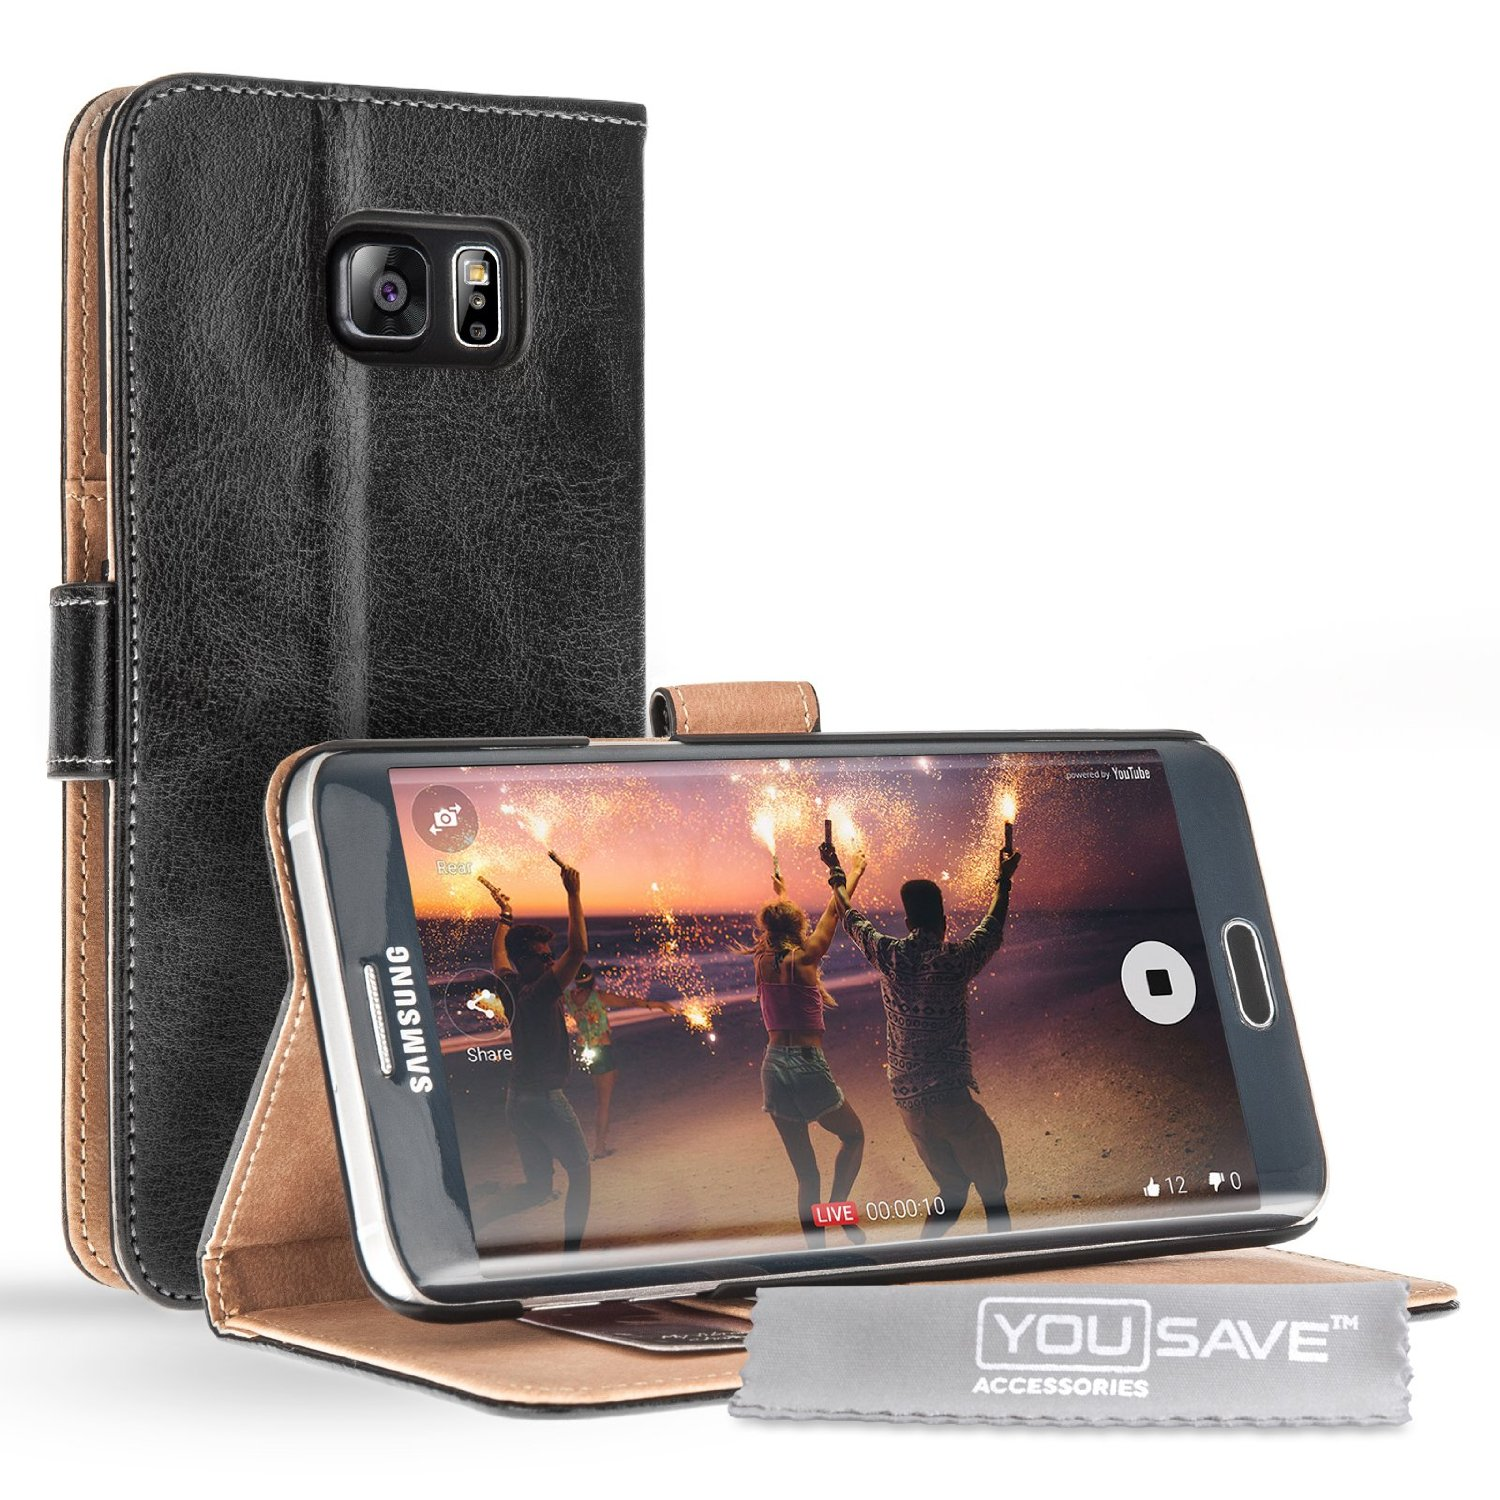 Yousave Accessories Samsung Galaxy S6 Edge Plus PU Leather Stand Wallet -Black